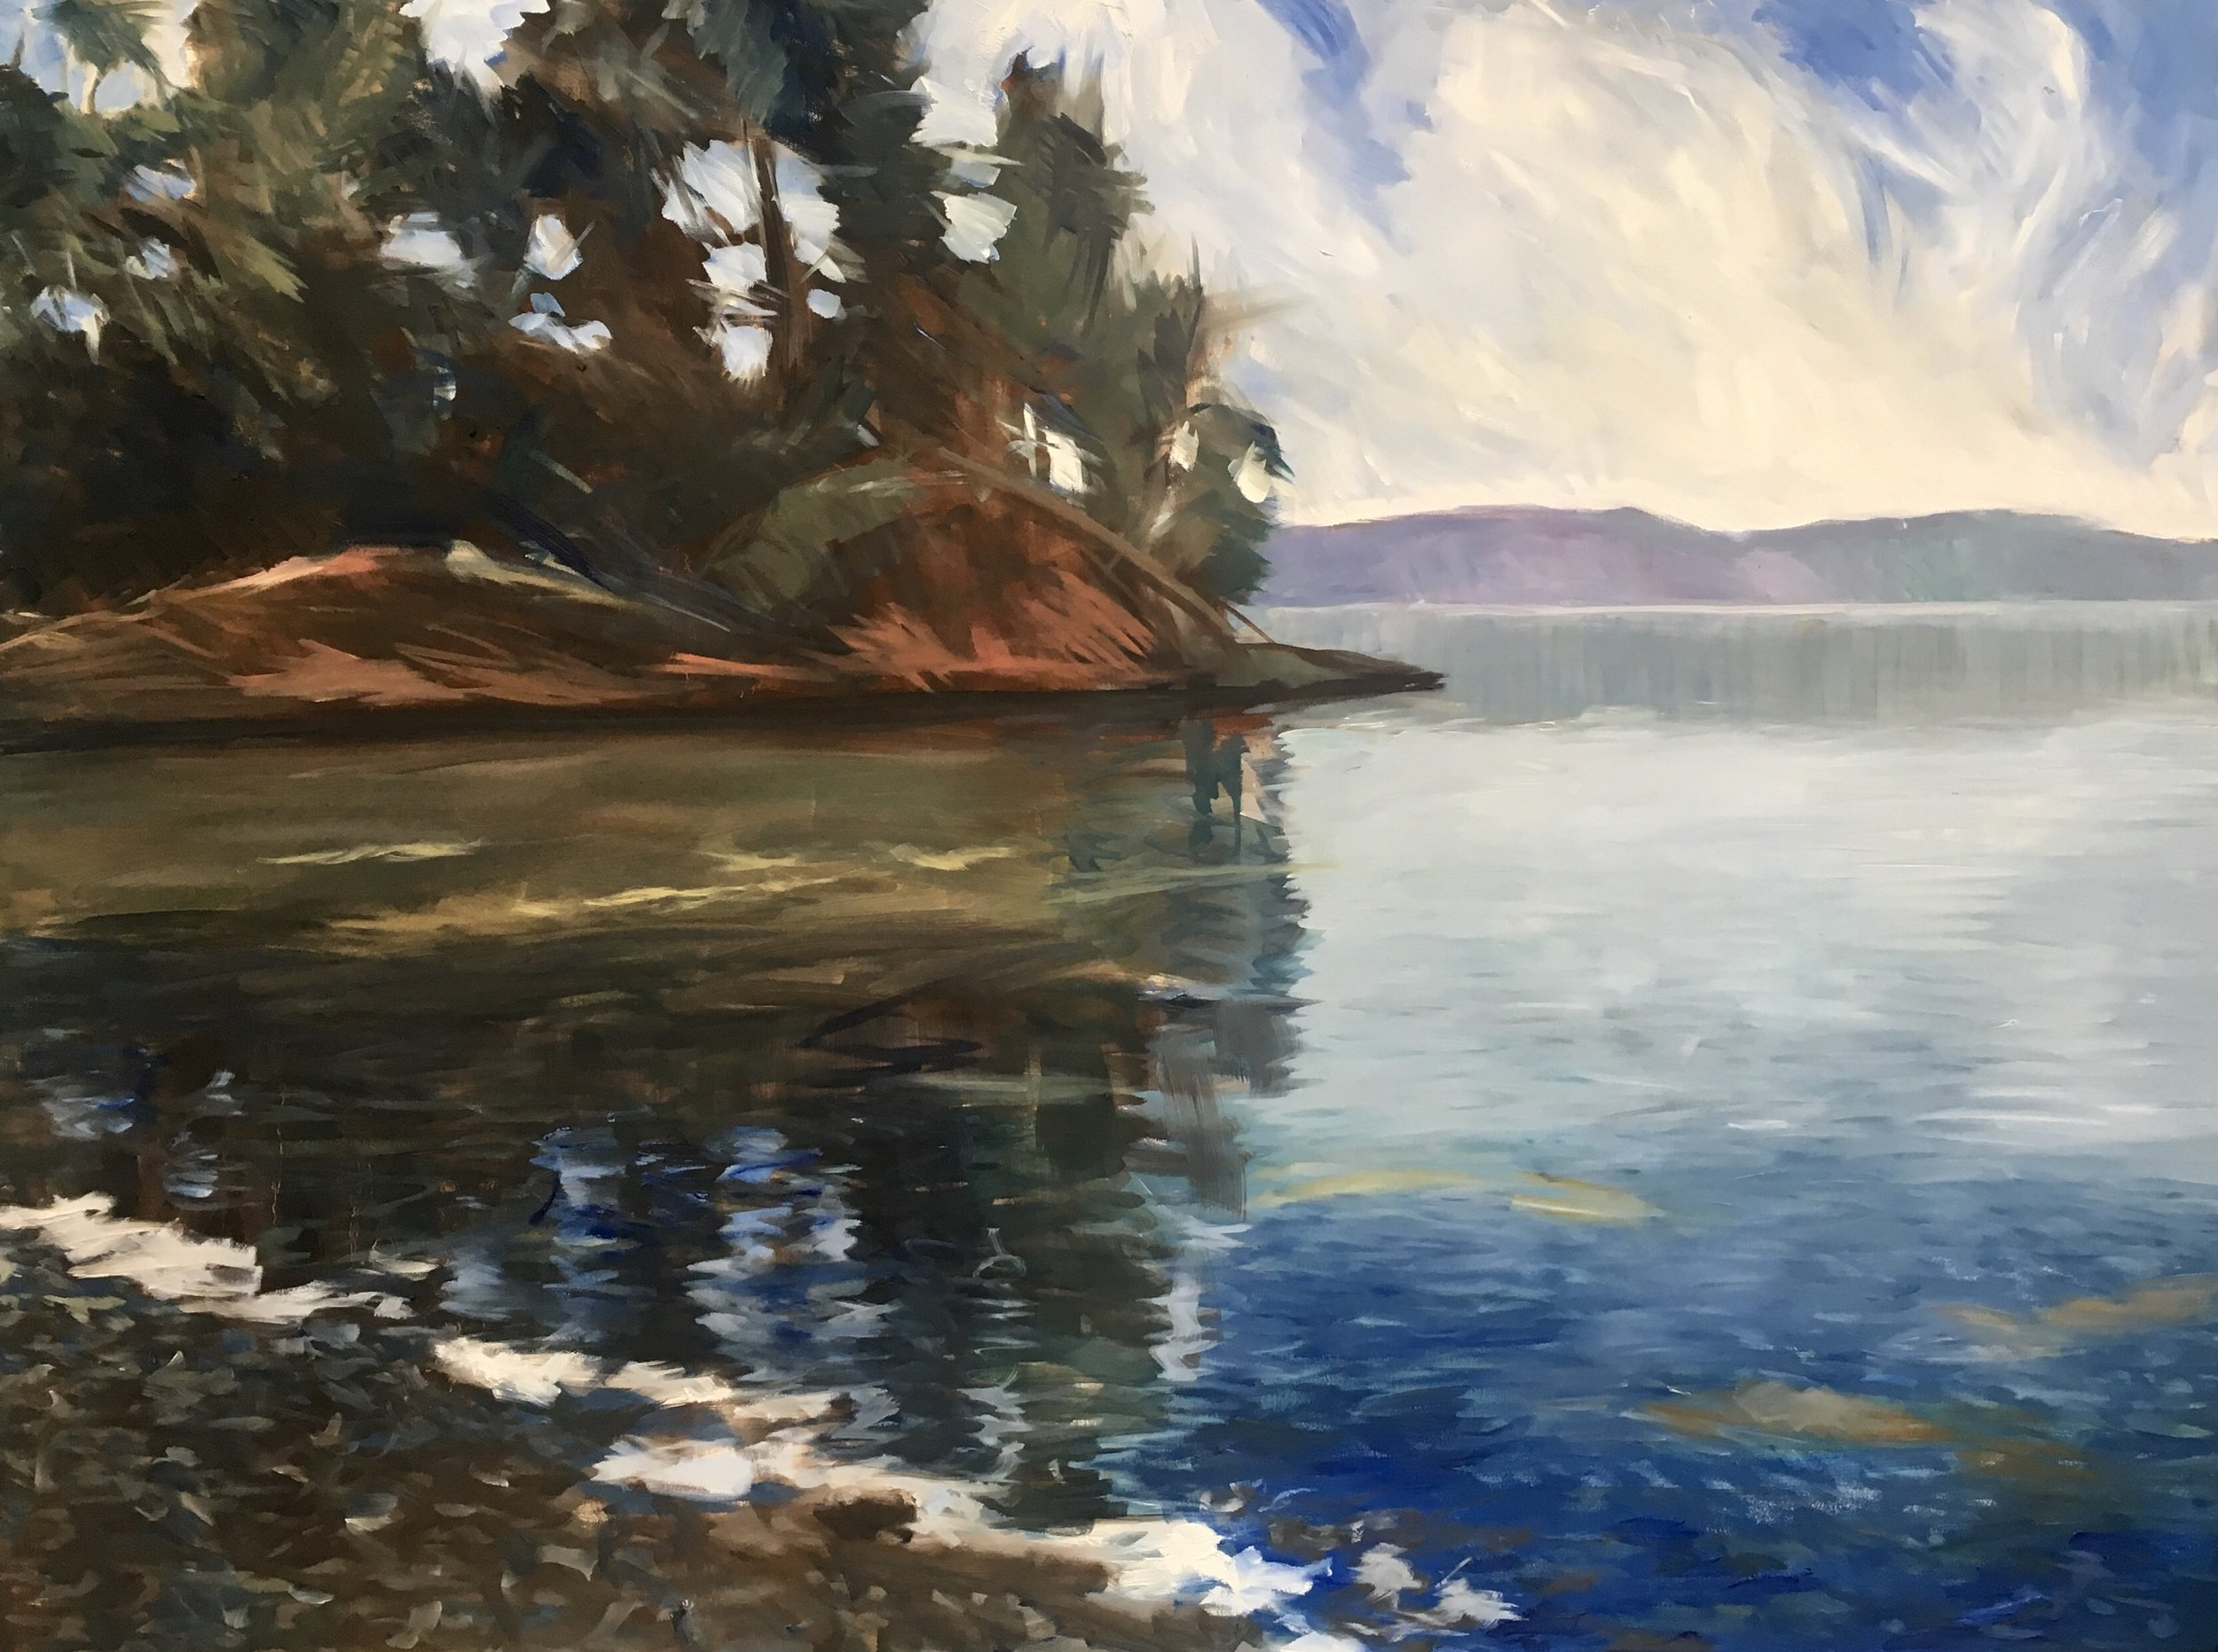 "Evening Light oil on canvas 48""x 36"".   The reference for this painting came from a little cove very close to us. Little streaks of sunlight interrupt the reflections in the water. We are so lucky to be able to go down to the shore after a long hot day and contemplate the serenity of this small and rare part of the world."